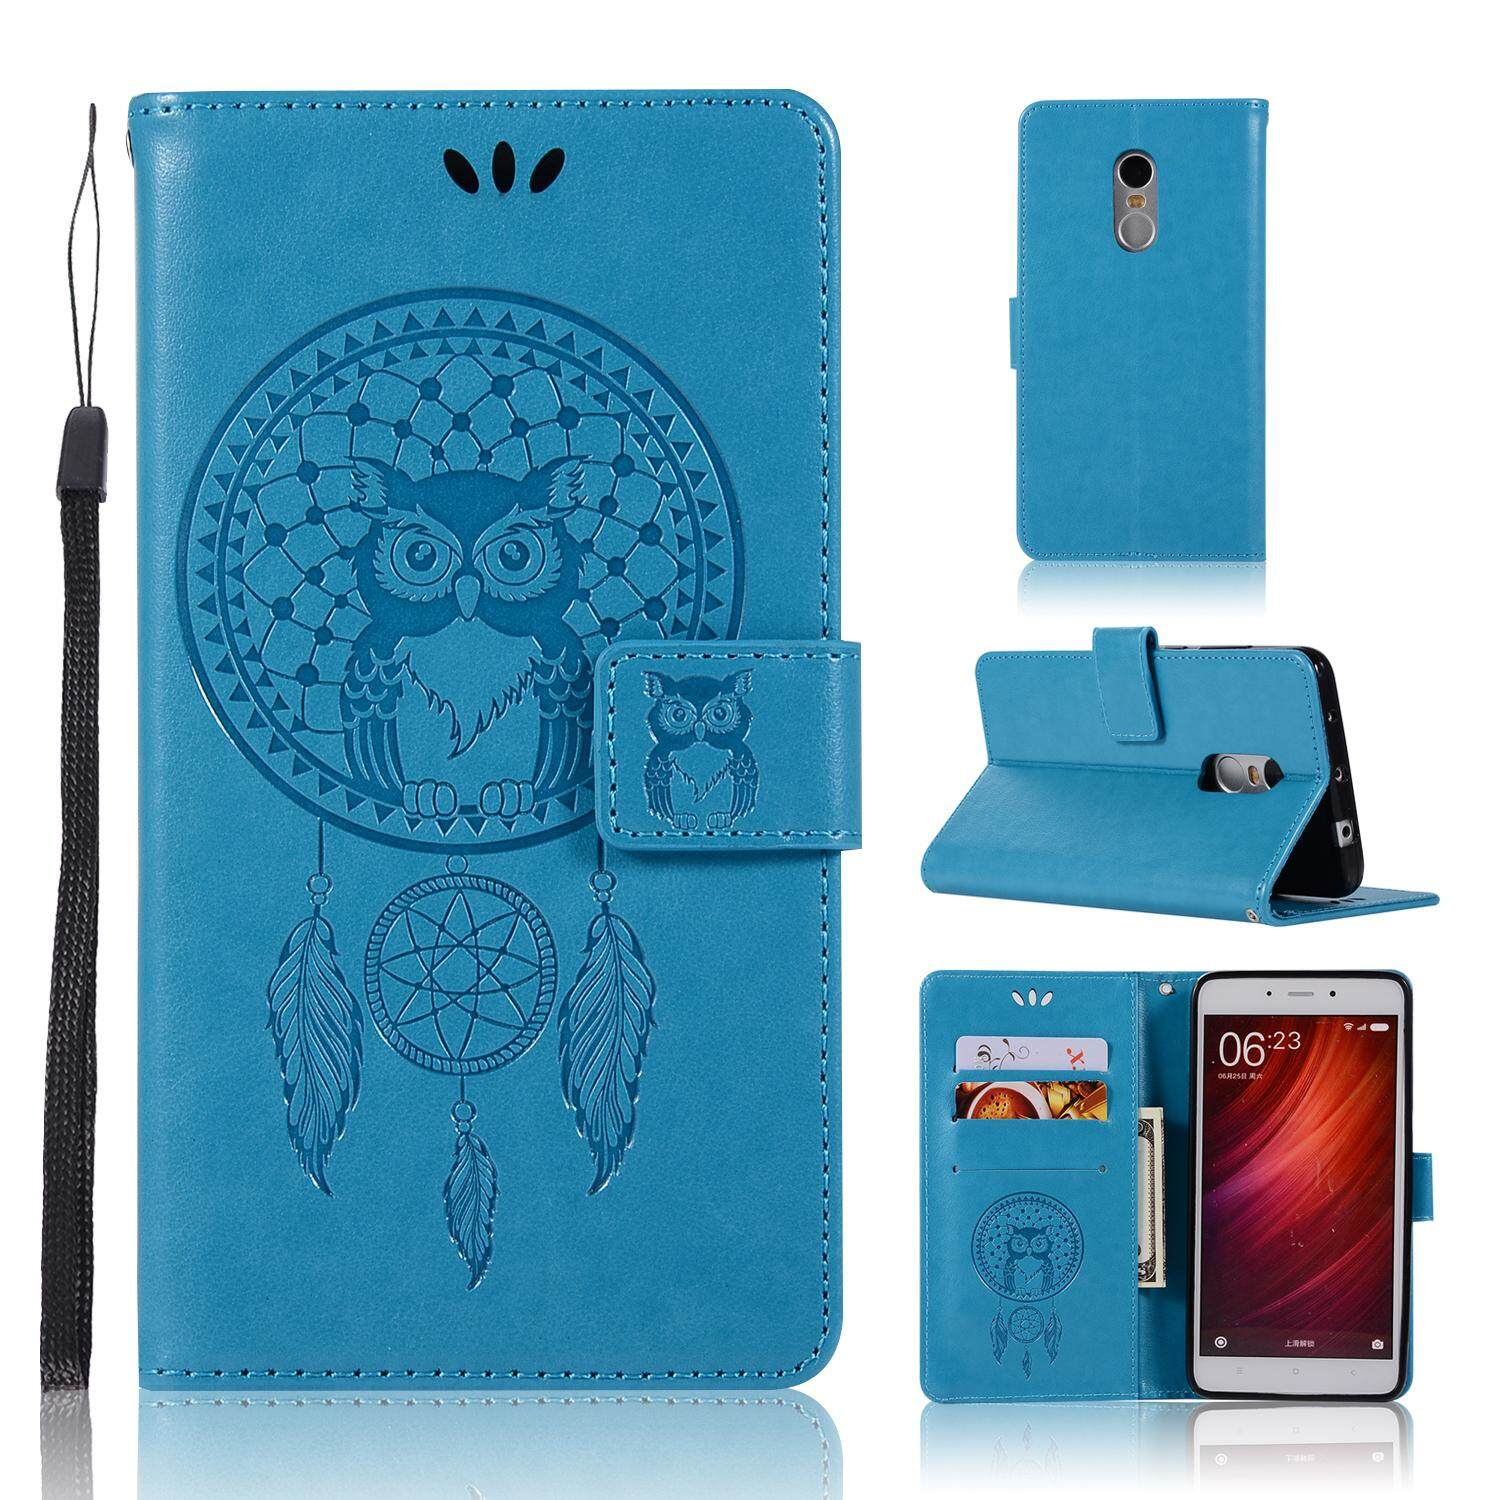 Luxury For Xiaomi Redmi Note 4 / Note 4x Casing , 3d Owl Embossing Leather Folio Flip Case Cover By Life Goes On.